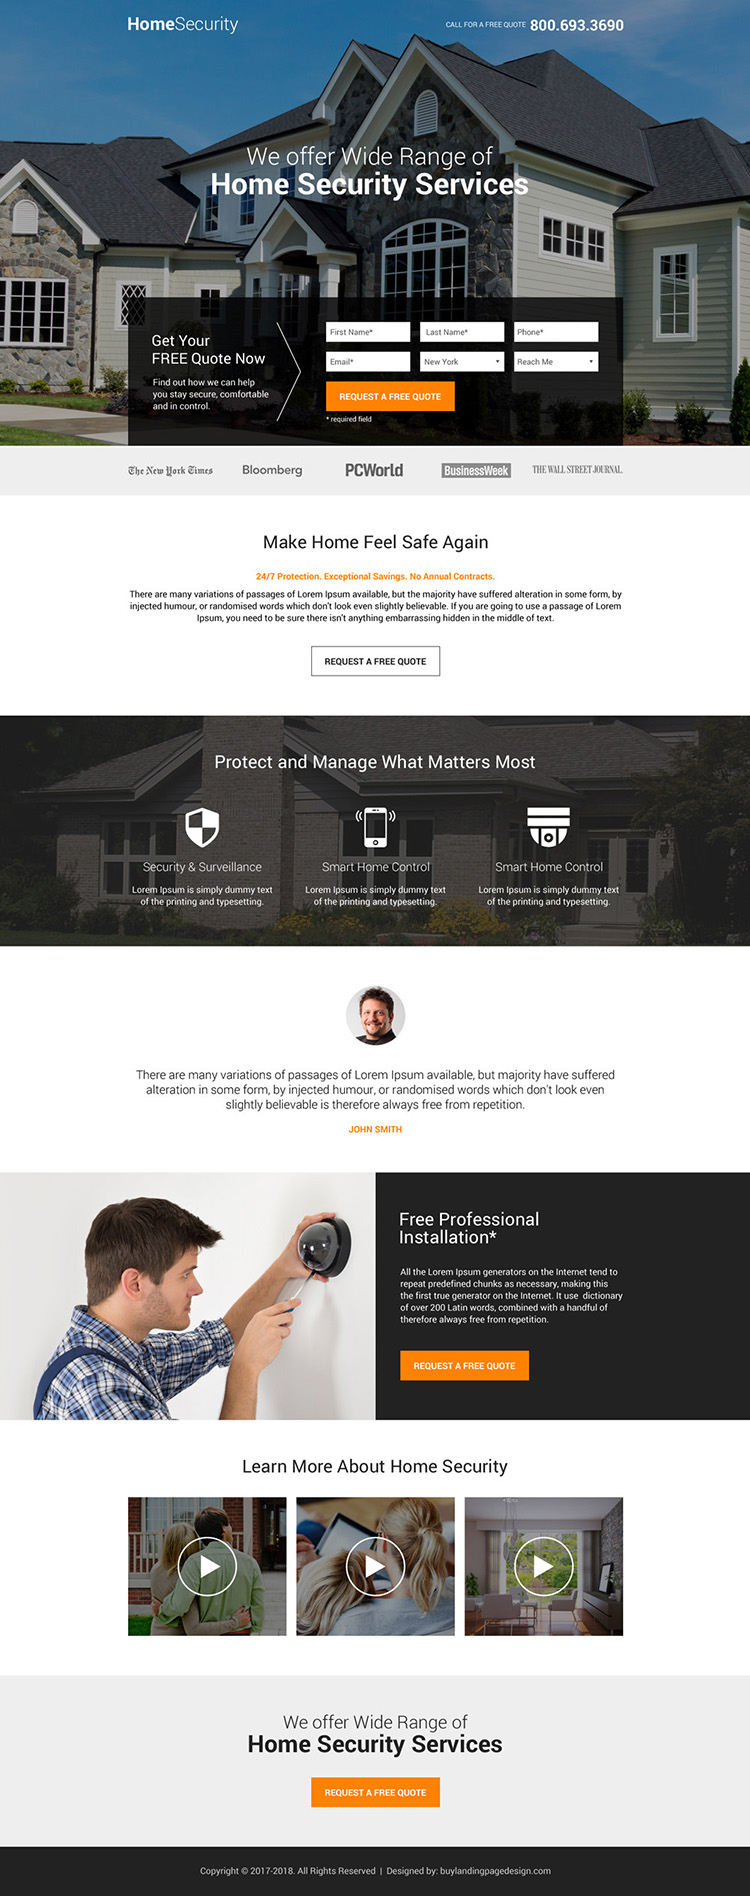 home security service free quote lead gen landing page